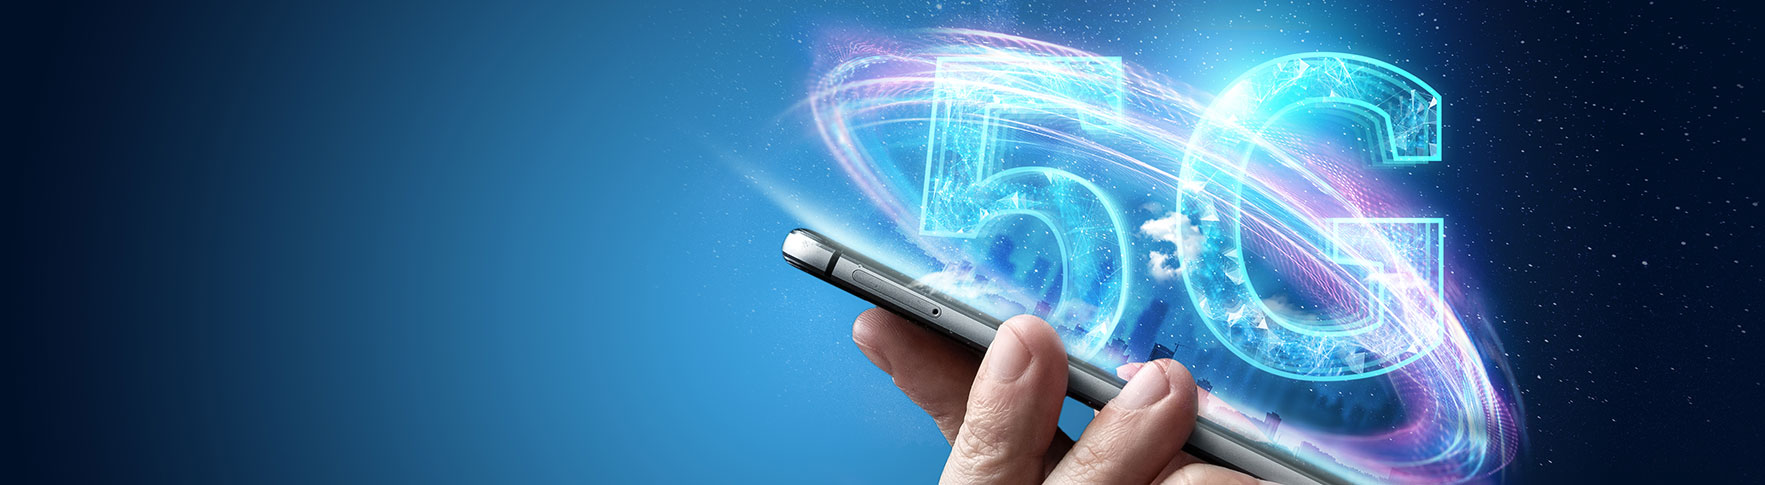 5G Campaigns: Marketing in a Futuristic World